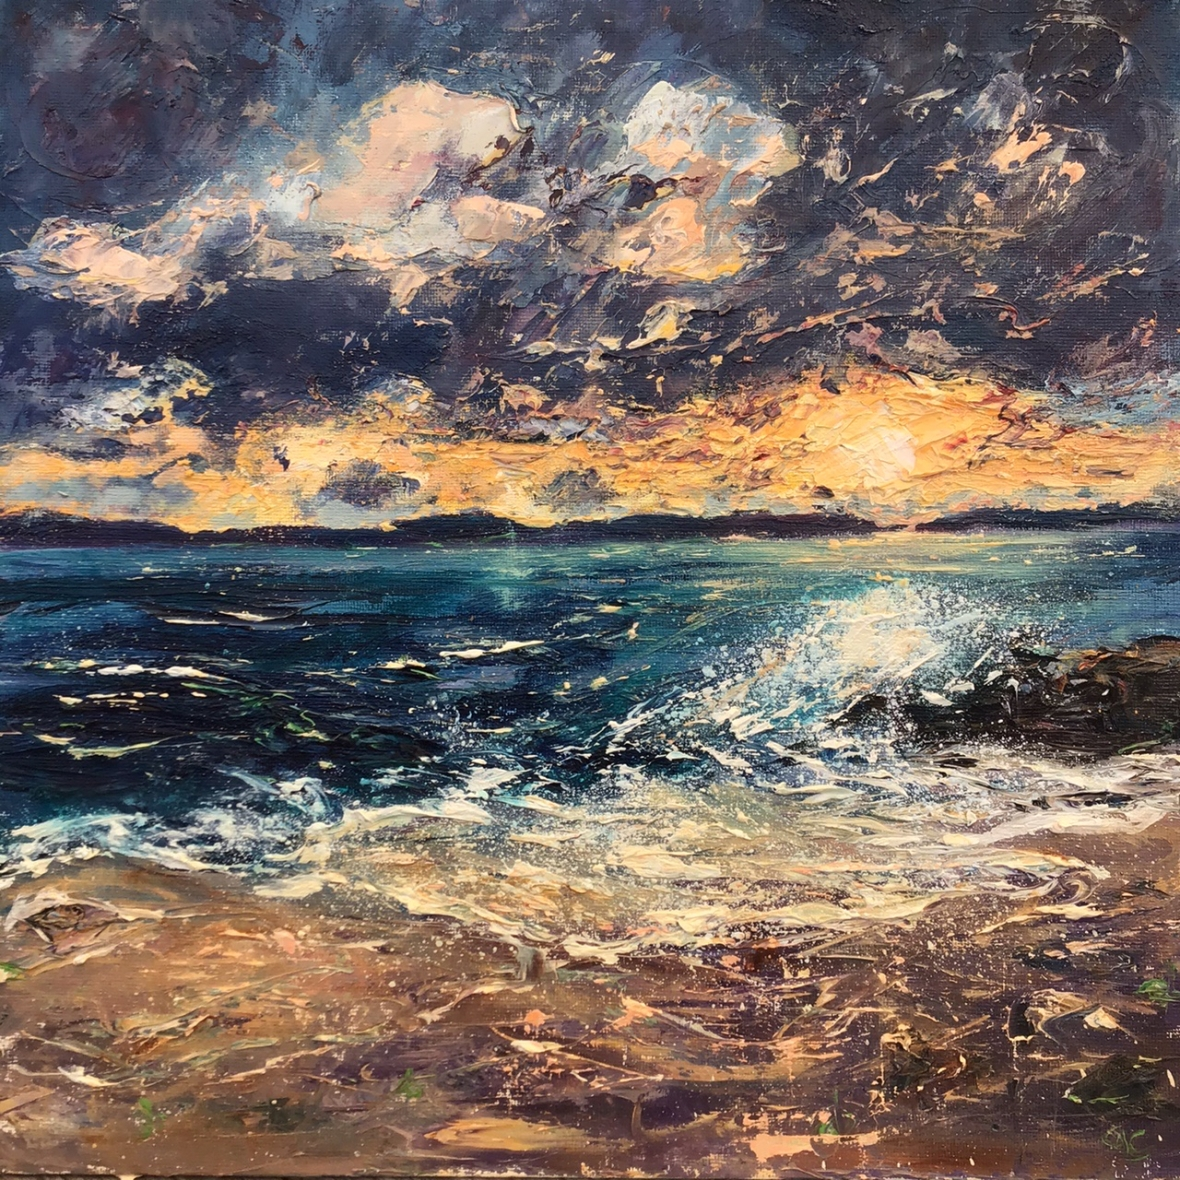 Winter sunrise Porthgwidden, oil painting by Anna Cumming